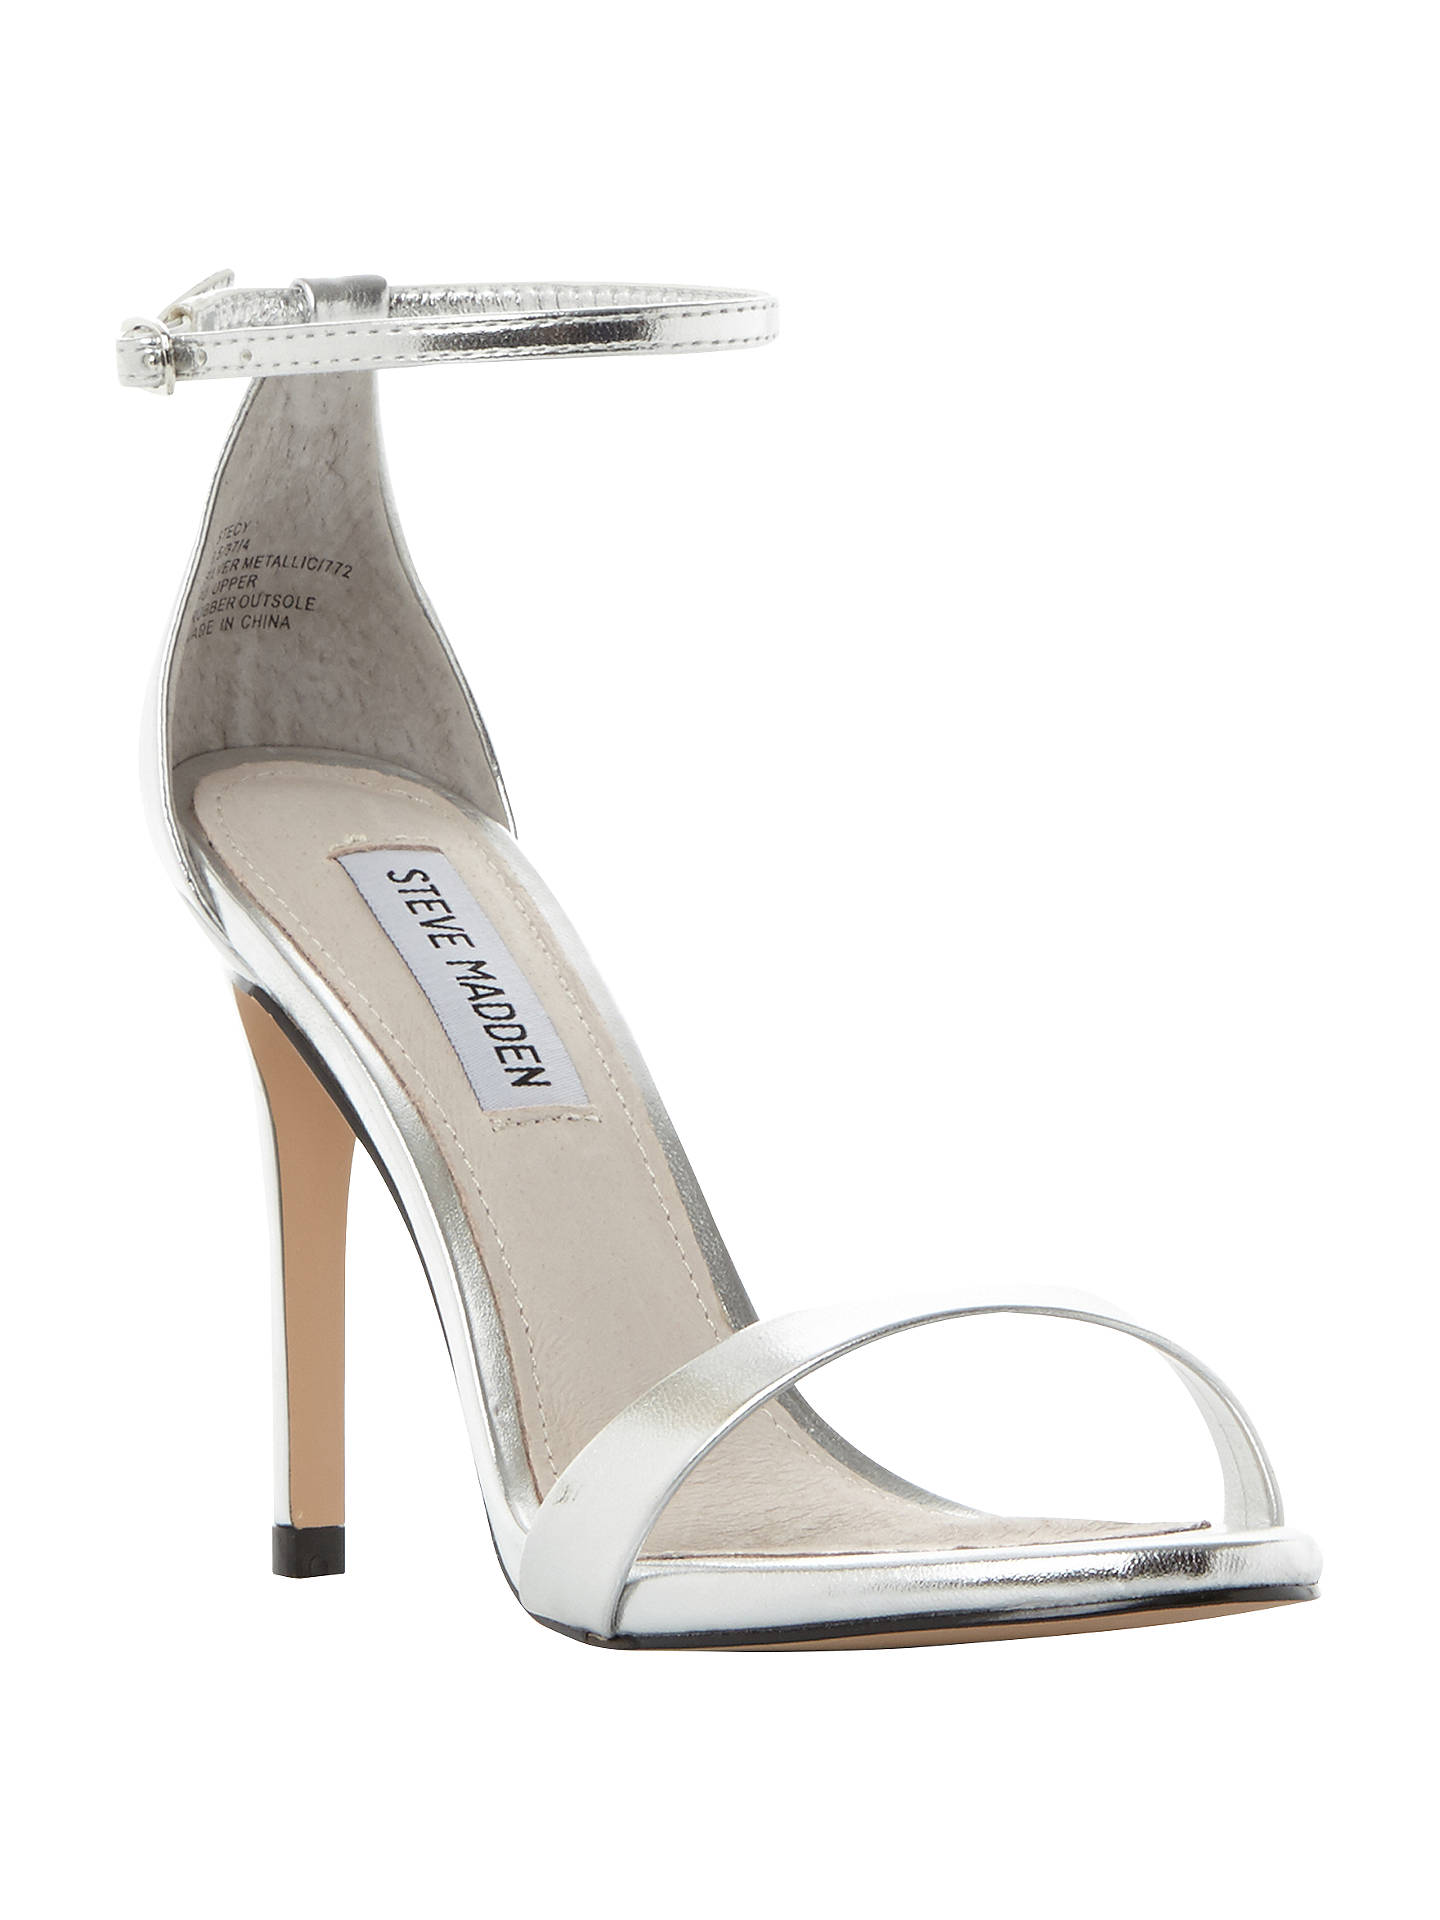 fe00604505d Steve Madden Stecy Stiletto Sandals at John Lewis & Partners